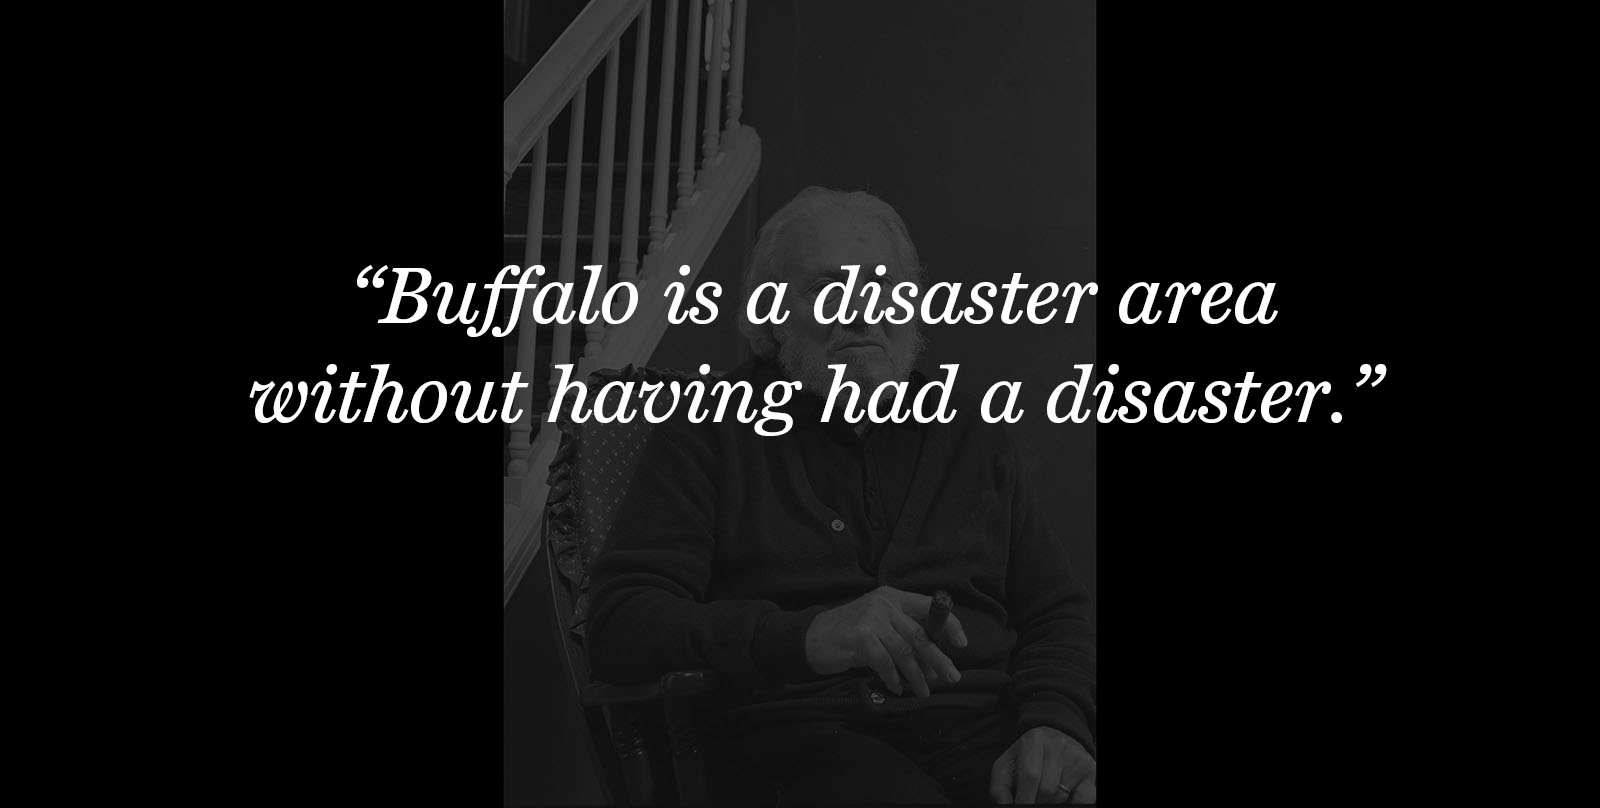 One of the meanest quotes about Buffalo, this one via Leslie Fiedler.